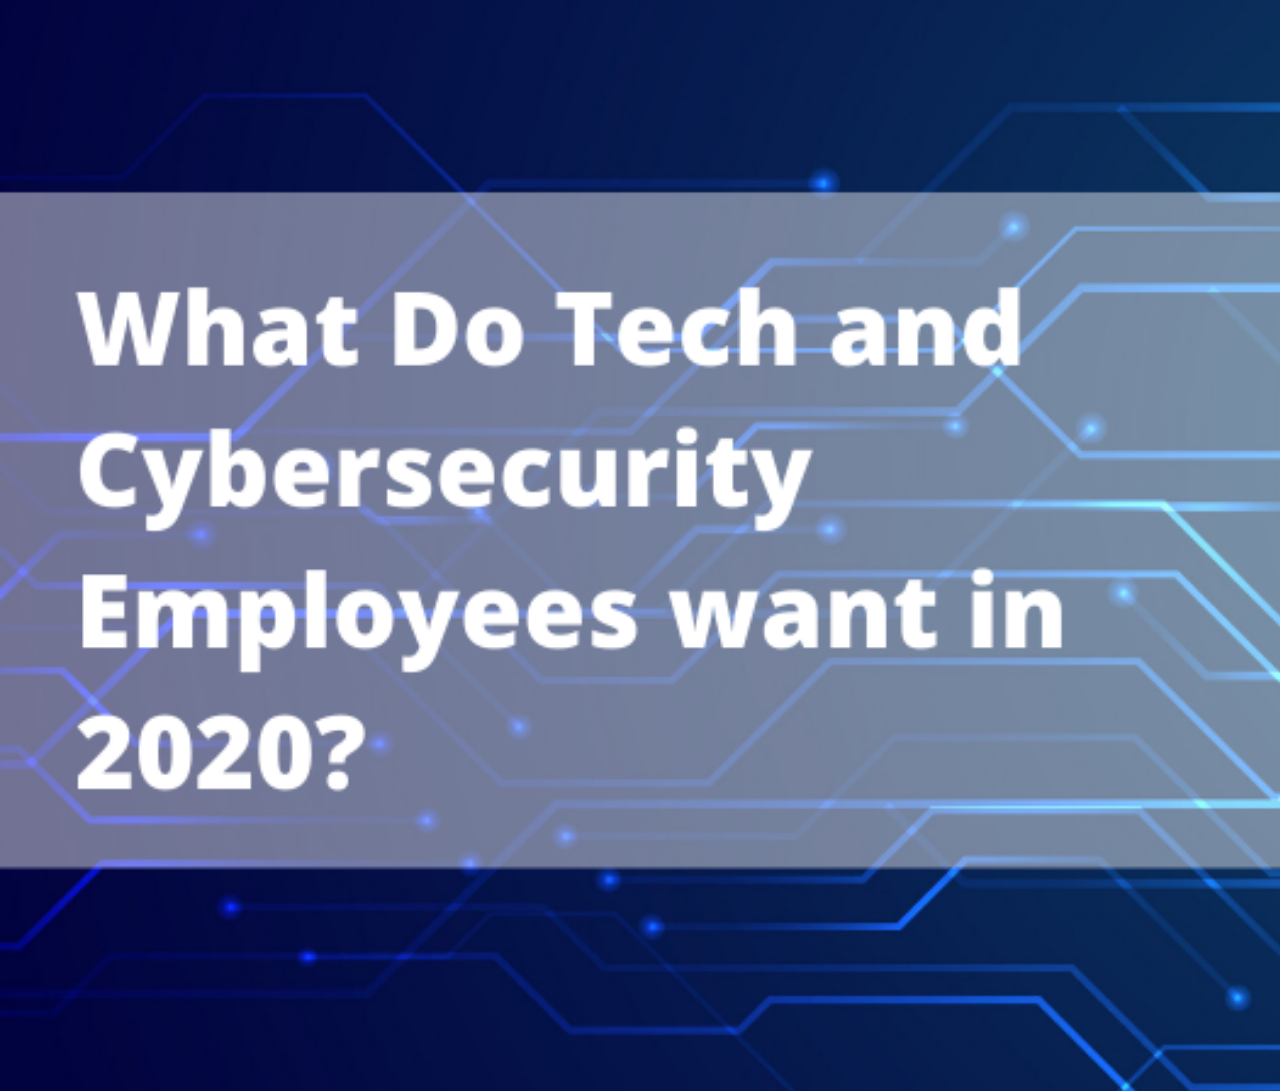 benefits-singapore-tech-cybersecurity-want-2020